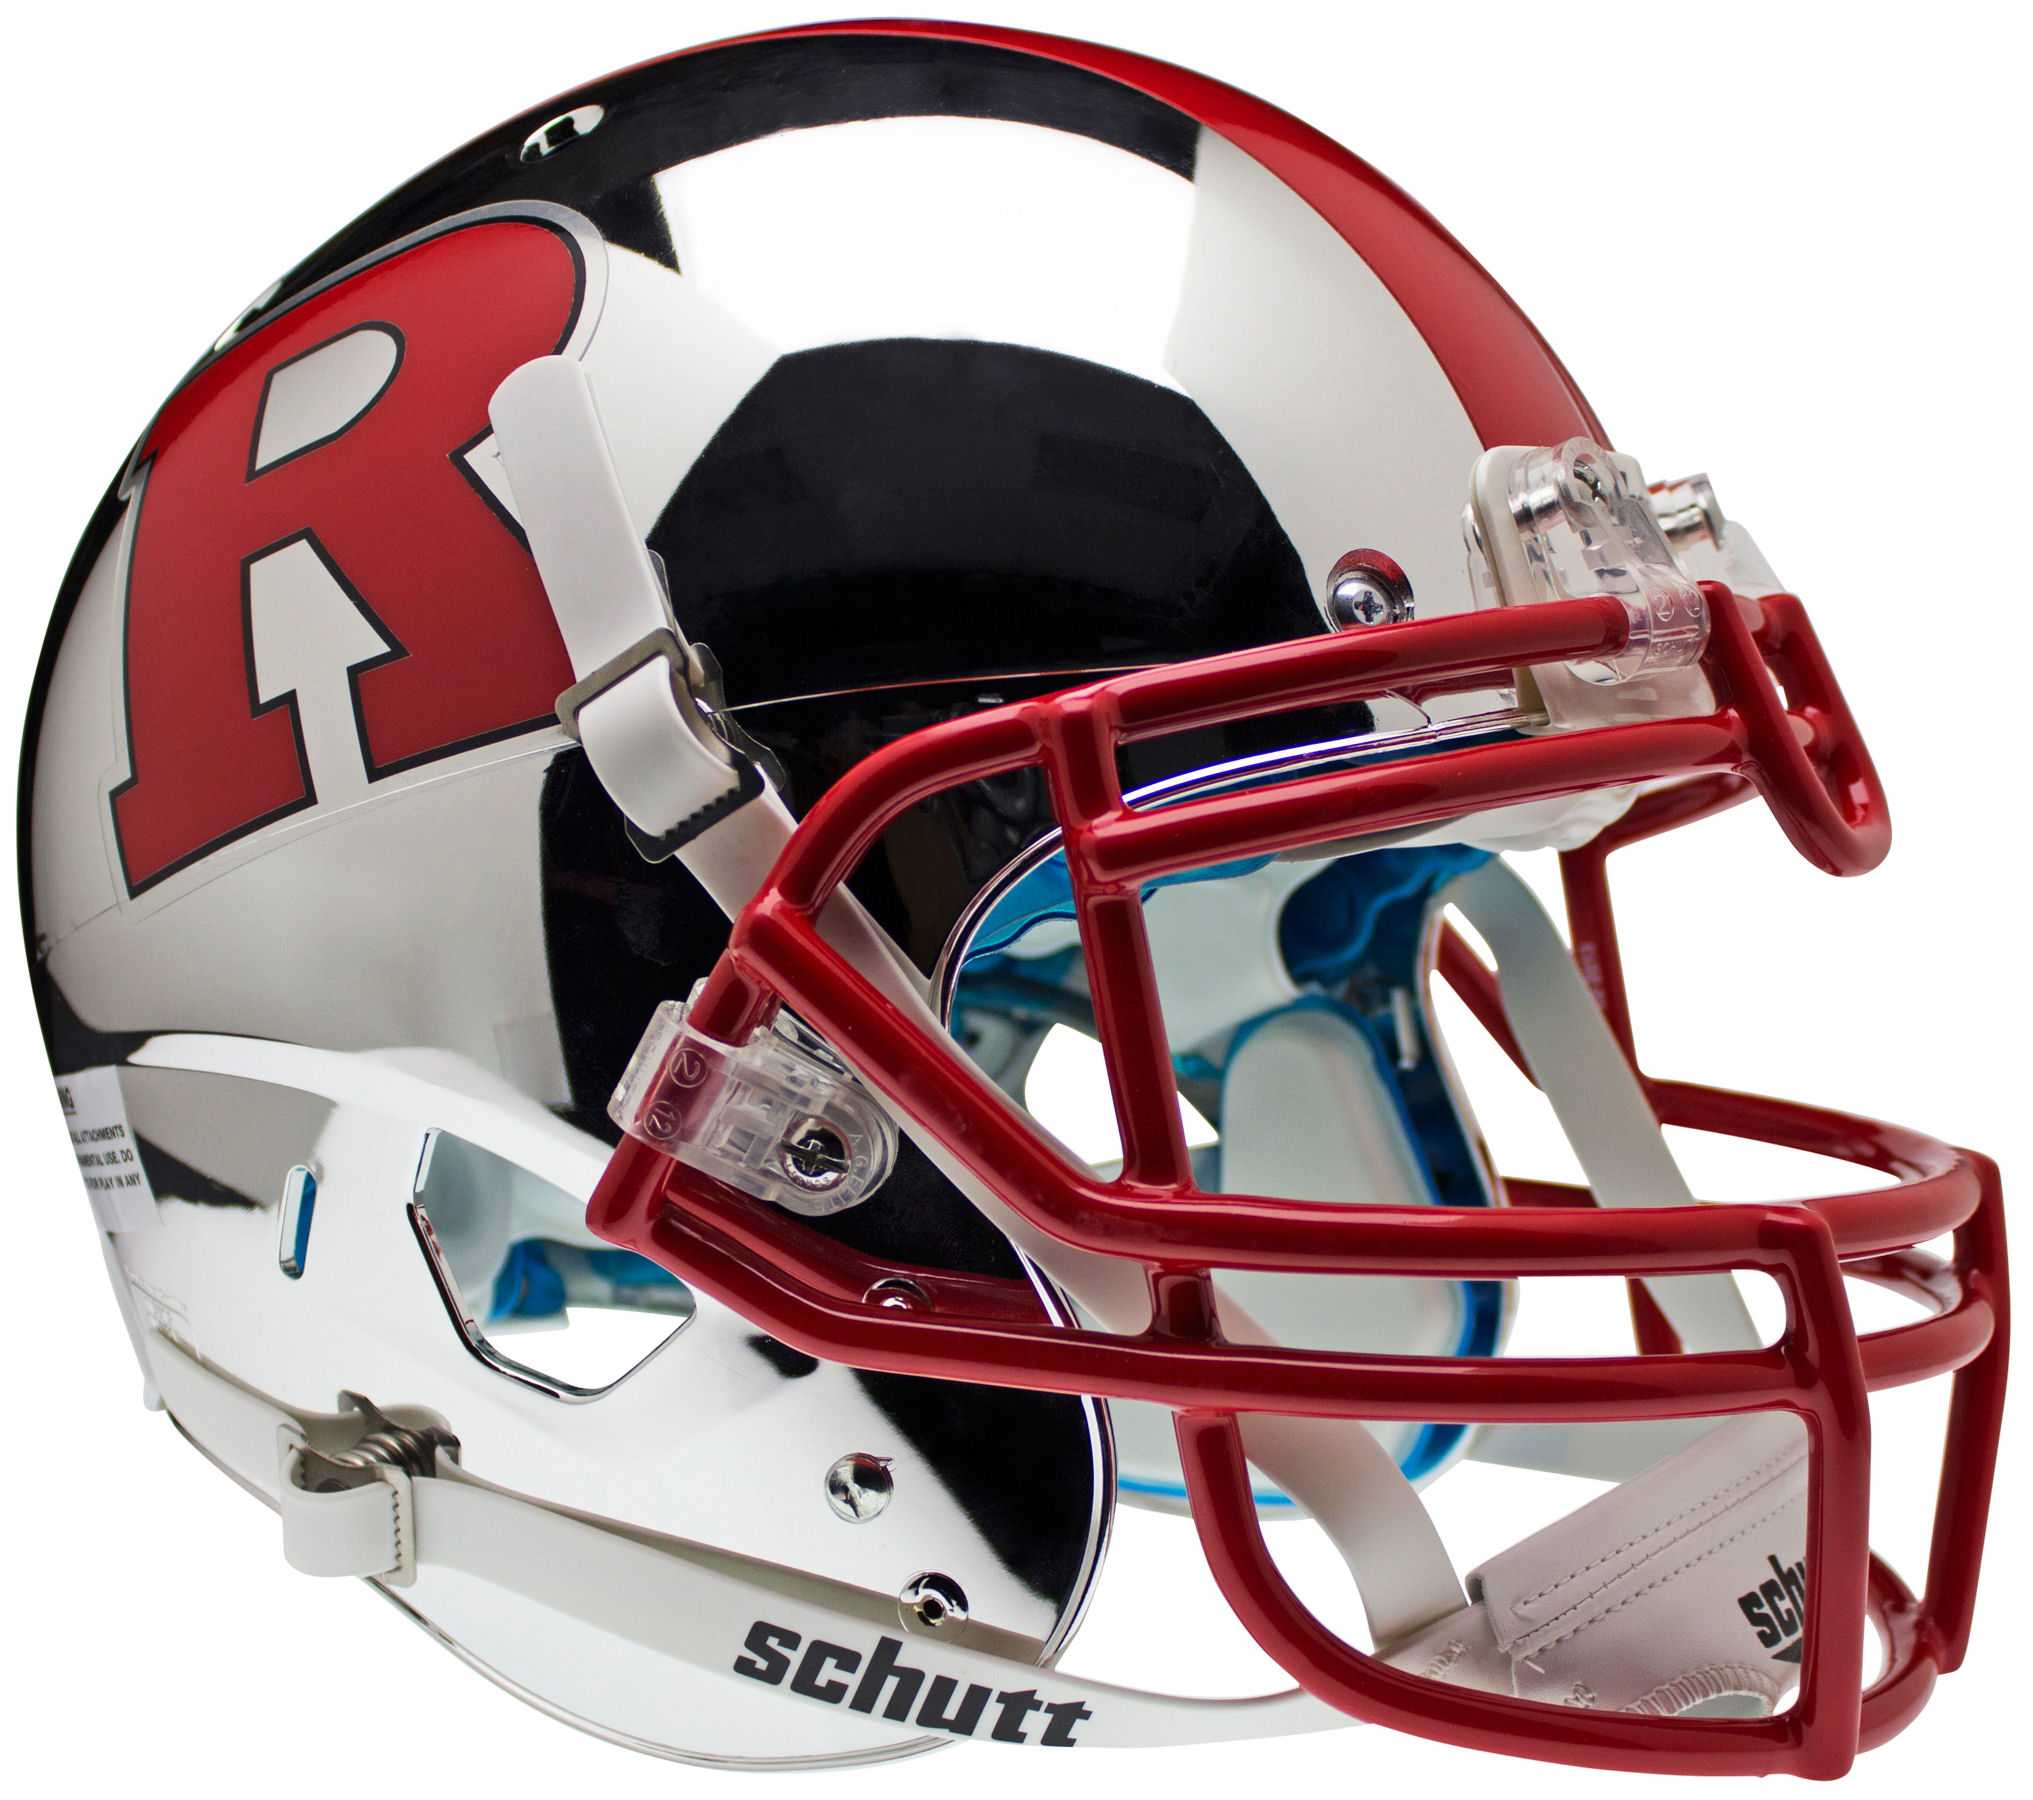 Rutgers Scarlet Knights Authentic College XP Football Helmet Schutt <B>Chrome Red R and Stripe</B>